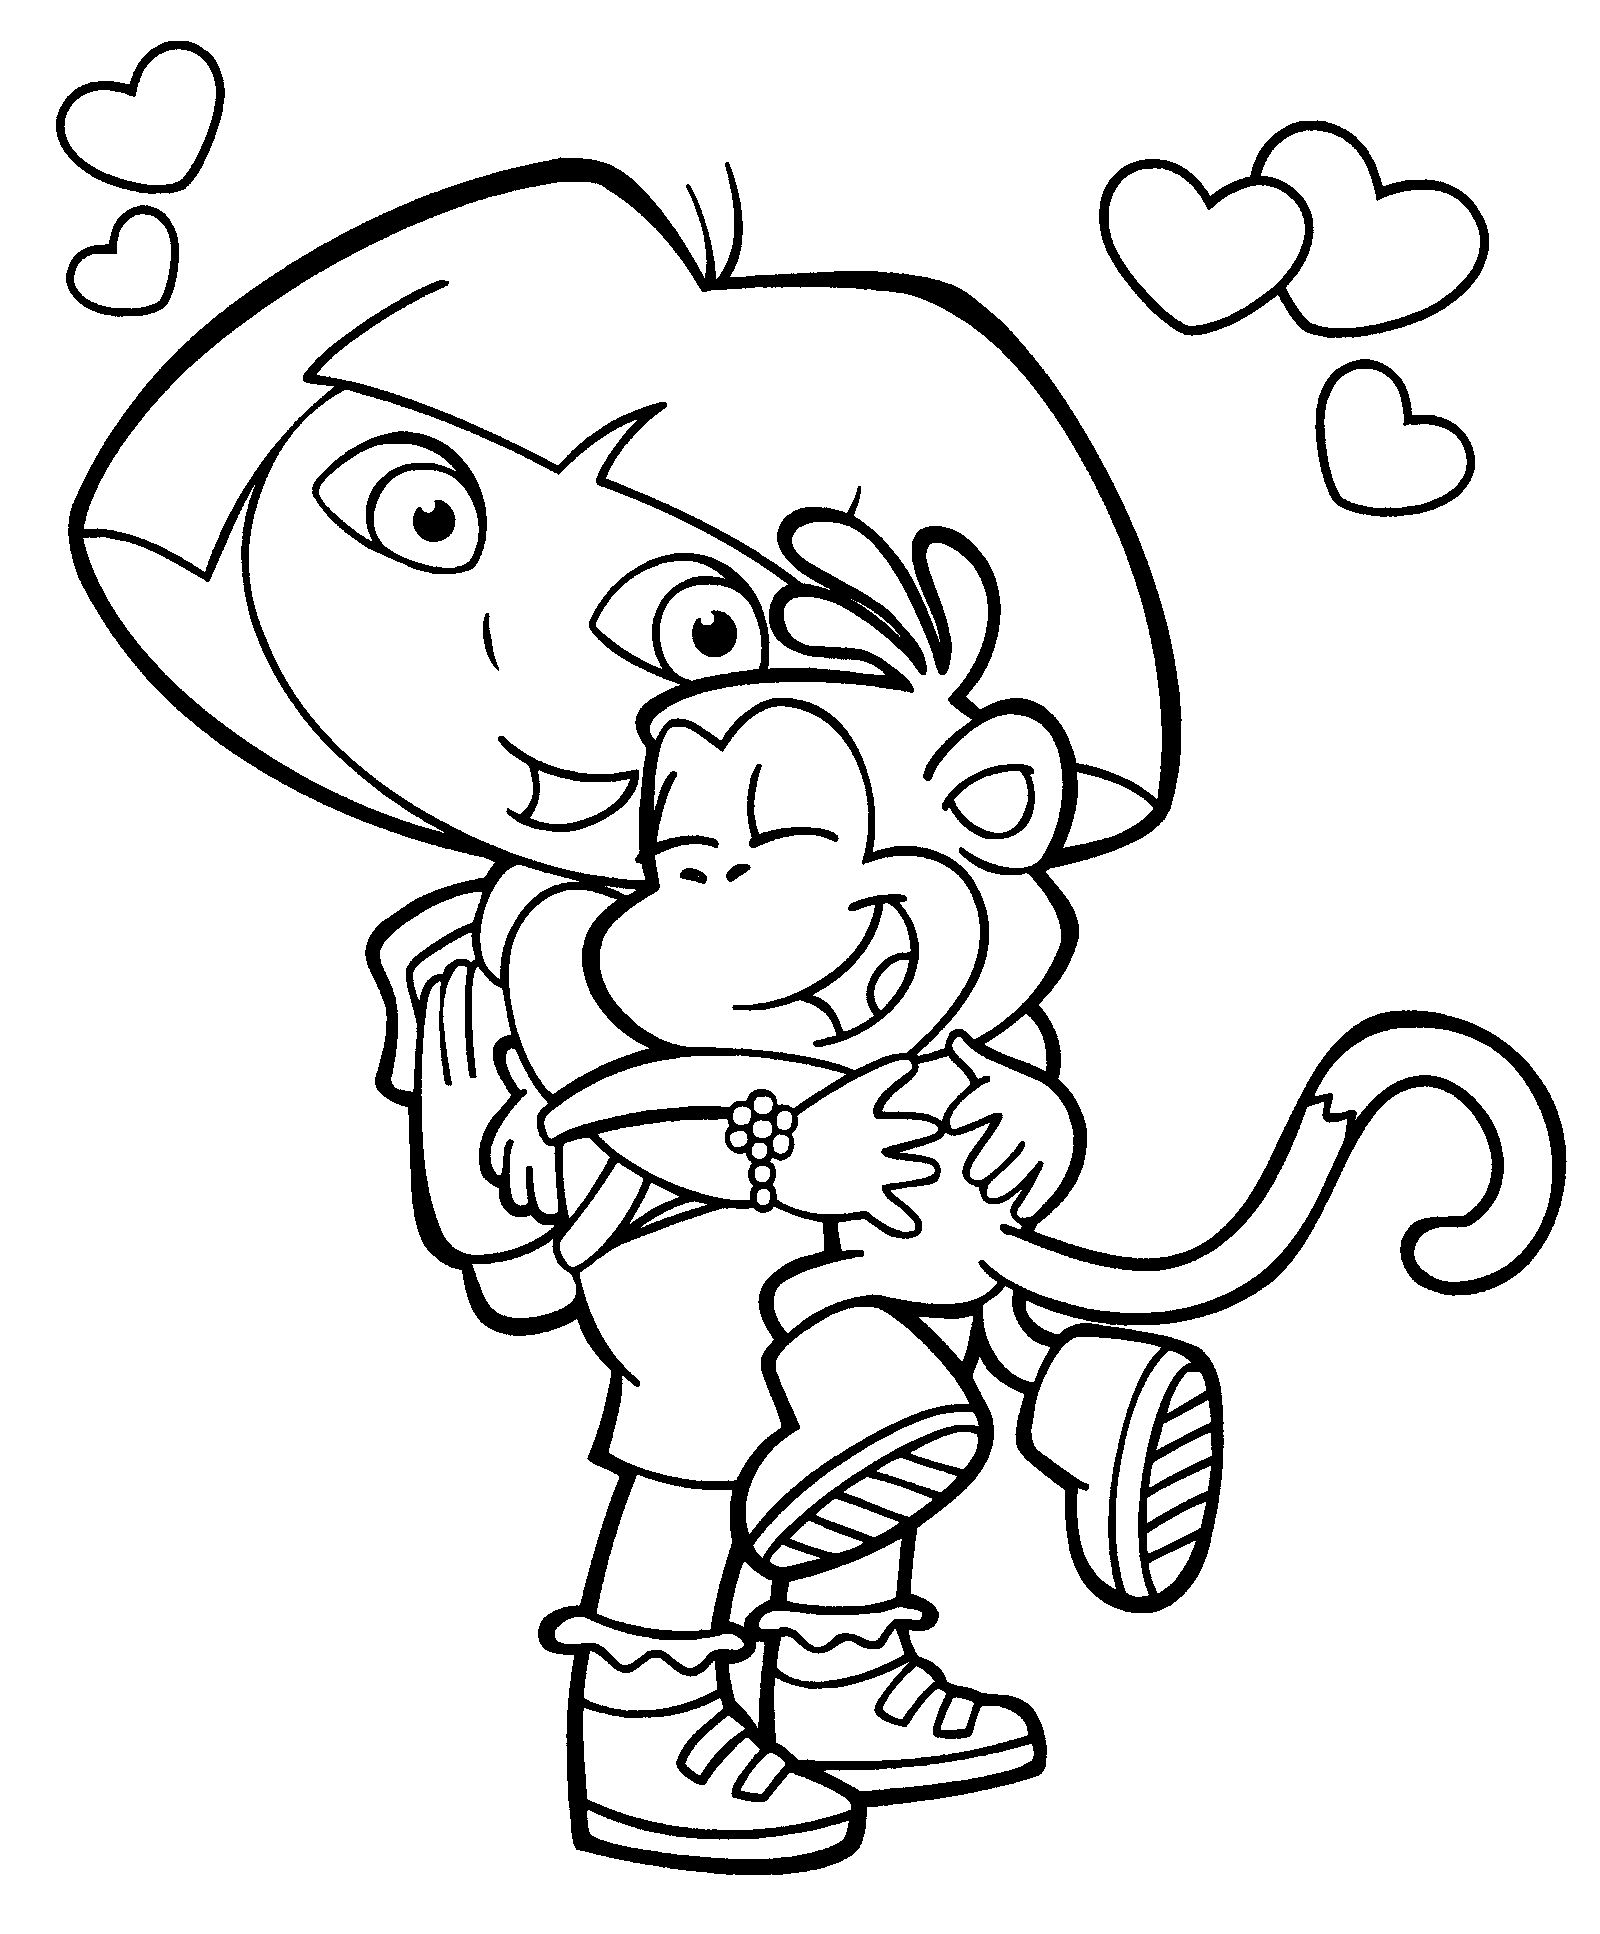 Dora Coloring Page Dora Coloring Cute Coloring Pages Cartoon Coloring Pages